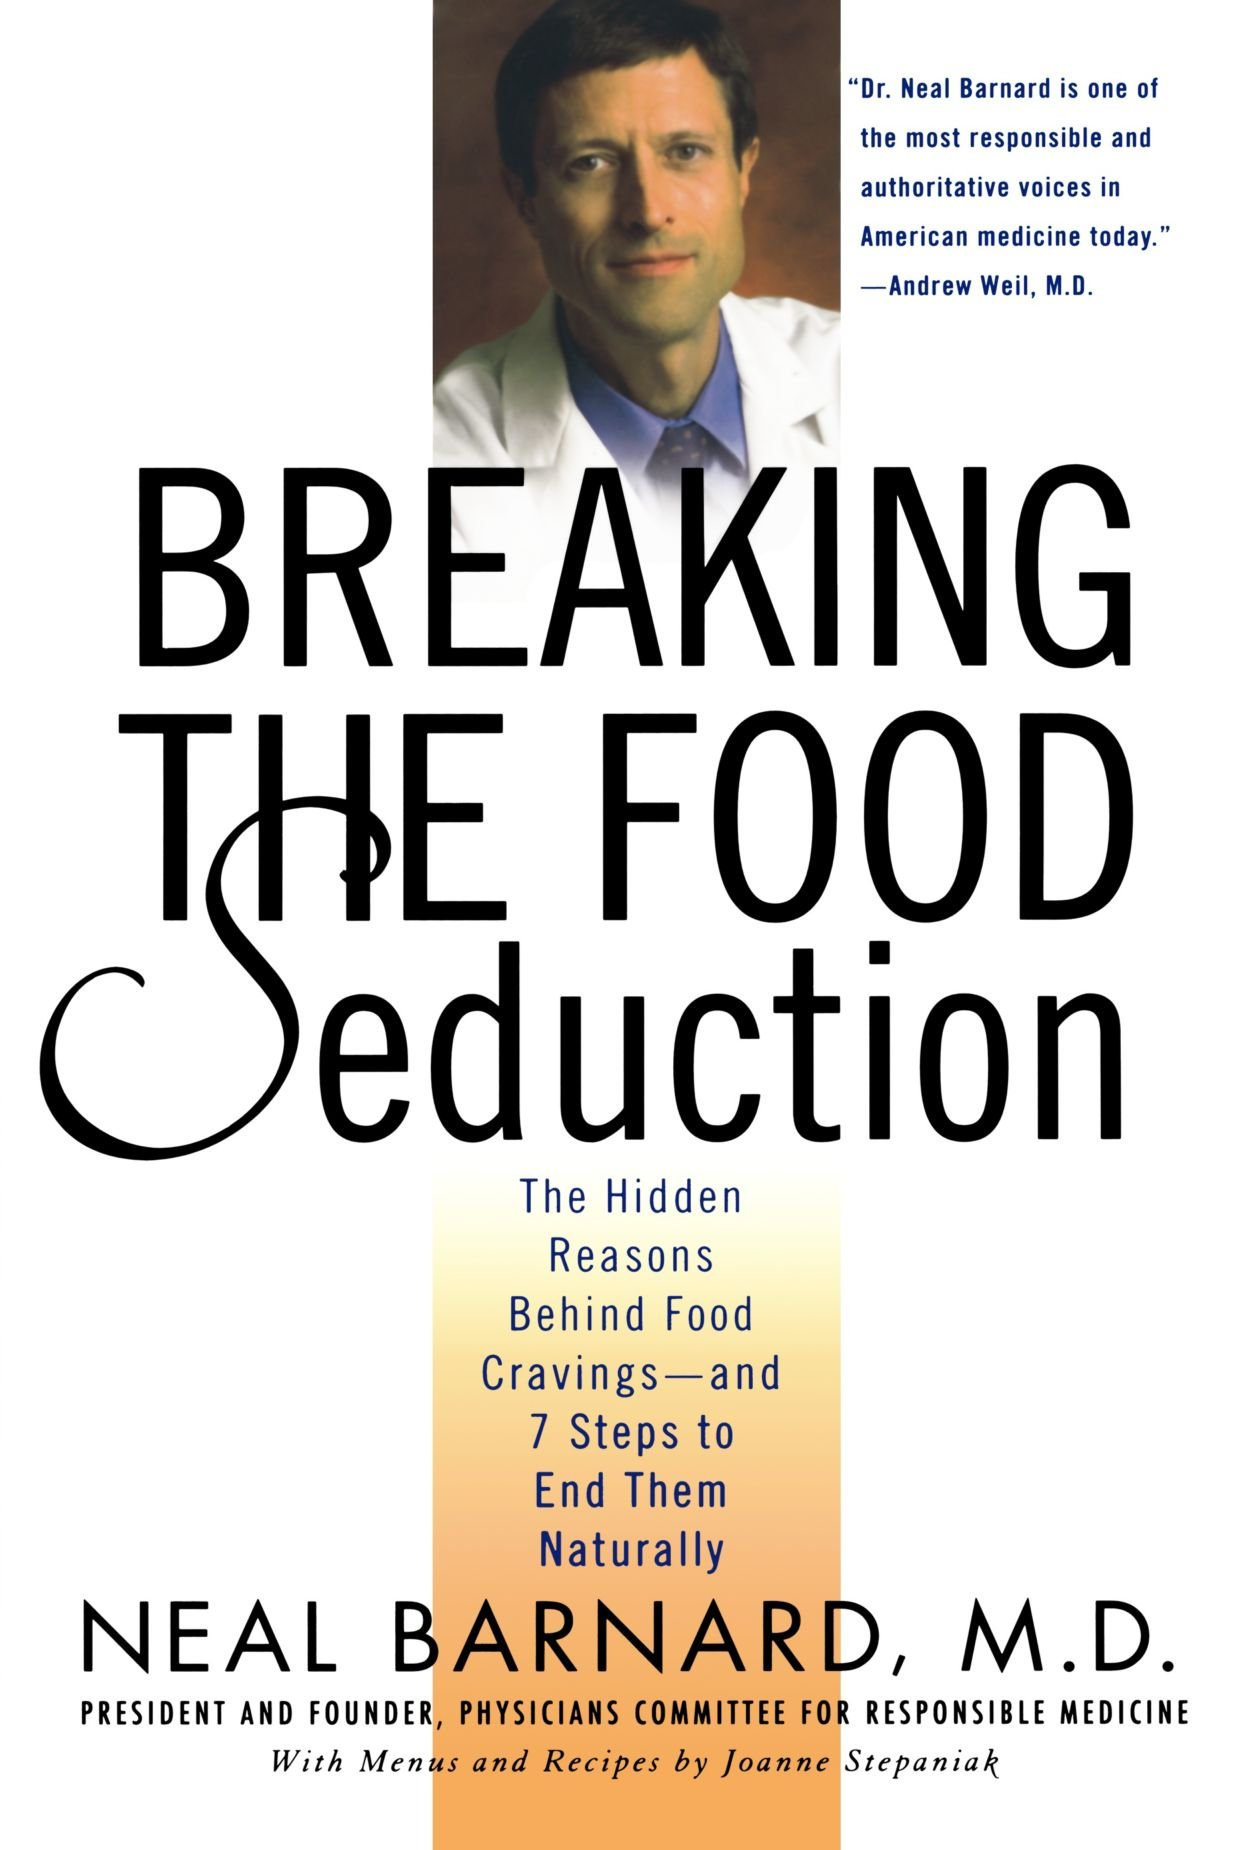 "breaking the food seduction: the hidden reasons behind food cravings- and 7 steps to end them naturally - By Dr. Neal Barnard, MDWhy is it so hard to resist the temptation of chocolate? Because chocolate triggers the release of natural opiates in the brain. It's a drug ""strong enough to keep us coming back for more,"" according to nutritional researcher Neal Barnard, M.D., president and founder of the Physician's Committee for Responsible Medicine. Cheese also releases mild opiates during digestion–no wonder we crave it. In Breaking the Food Seduction, Barnard helps you understand and overcome your food cravings. He explains which foods ""hook"" us the most and why, and what to do to break free when you want to decrease the calories and fat that accompany these seductive foods. Cheese, for example, is about 70 percent saturated fat and has more cholesterol, ounce for ounce, than a steak.Barnard offers seven steps to breaking your food cravings, devoting a chapter to each one, with anecdotes and plenty of clear, sound, practical tips. Then he presents guidelines for healthy eating using ""the New Four Food Groups""–vegetables, fruits, legumes, and whole grains–with a three-week menu plan and 113 healthful, vegan recipes. Highly recommended for people who want to understand their food cravings and finally get rid of them. –Joan Price –This text refers to an out of print or unavailable edition of this title."